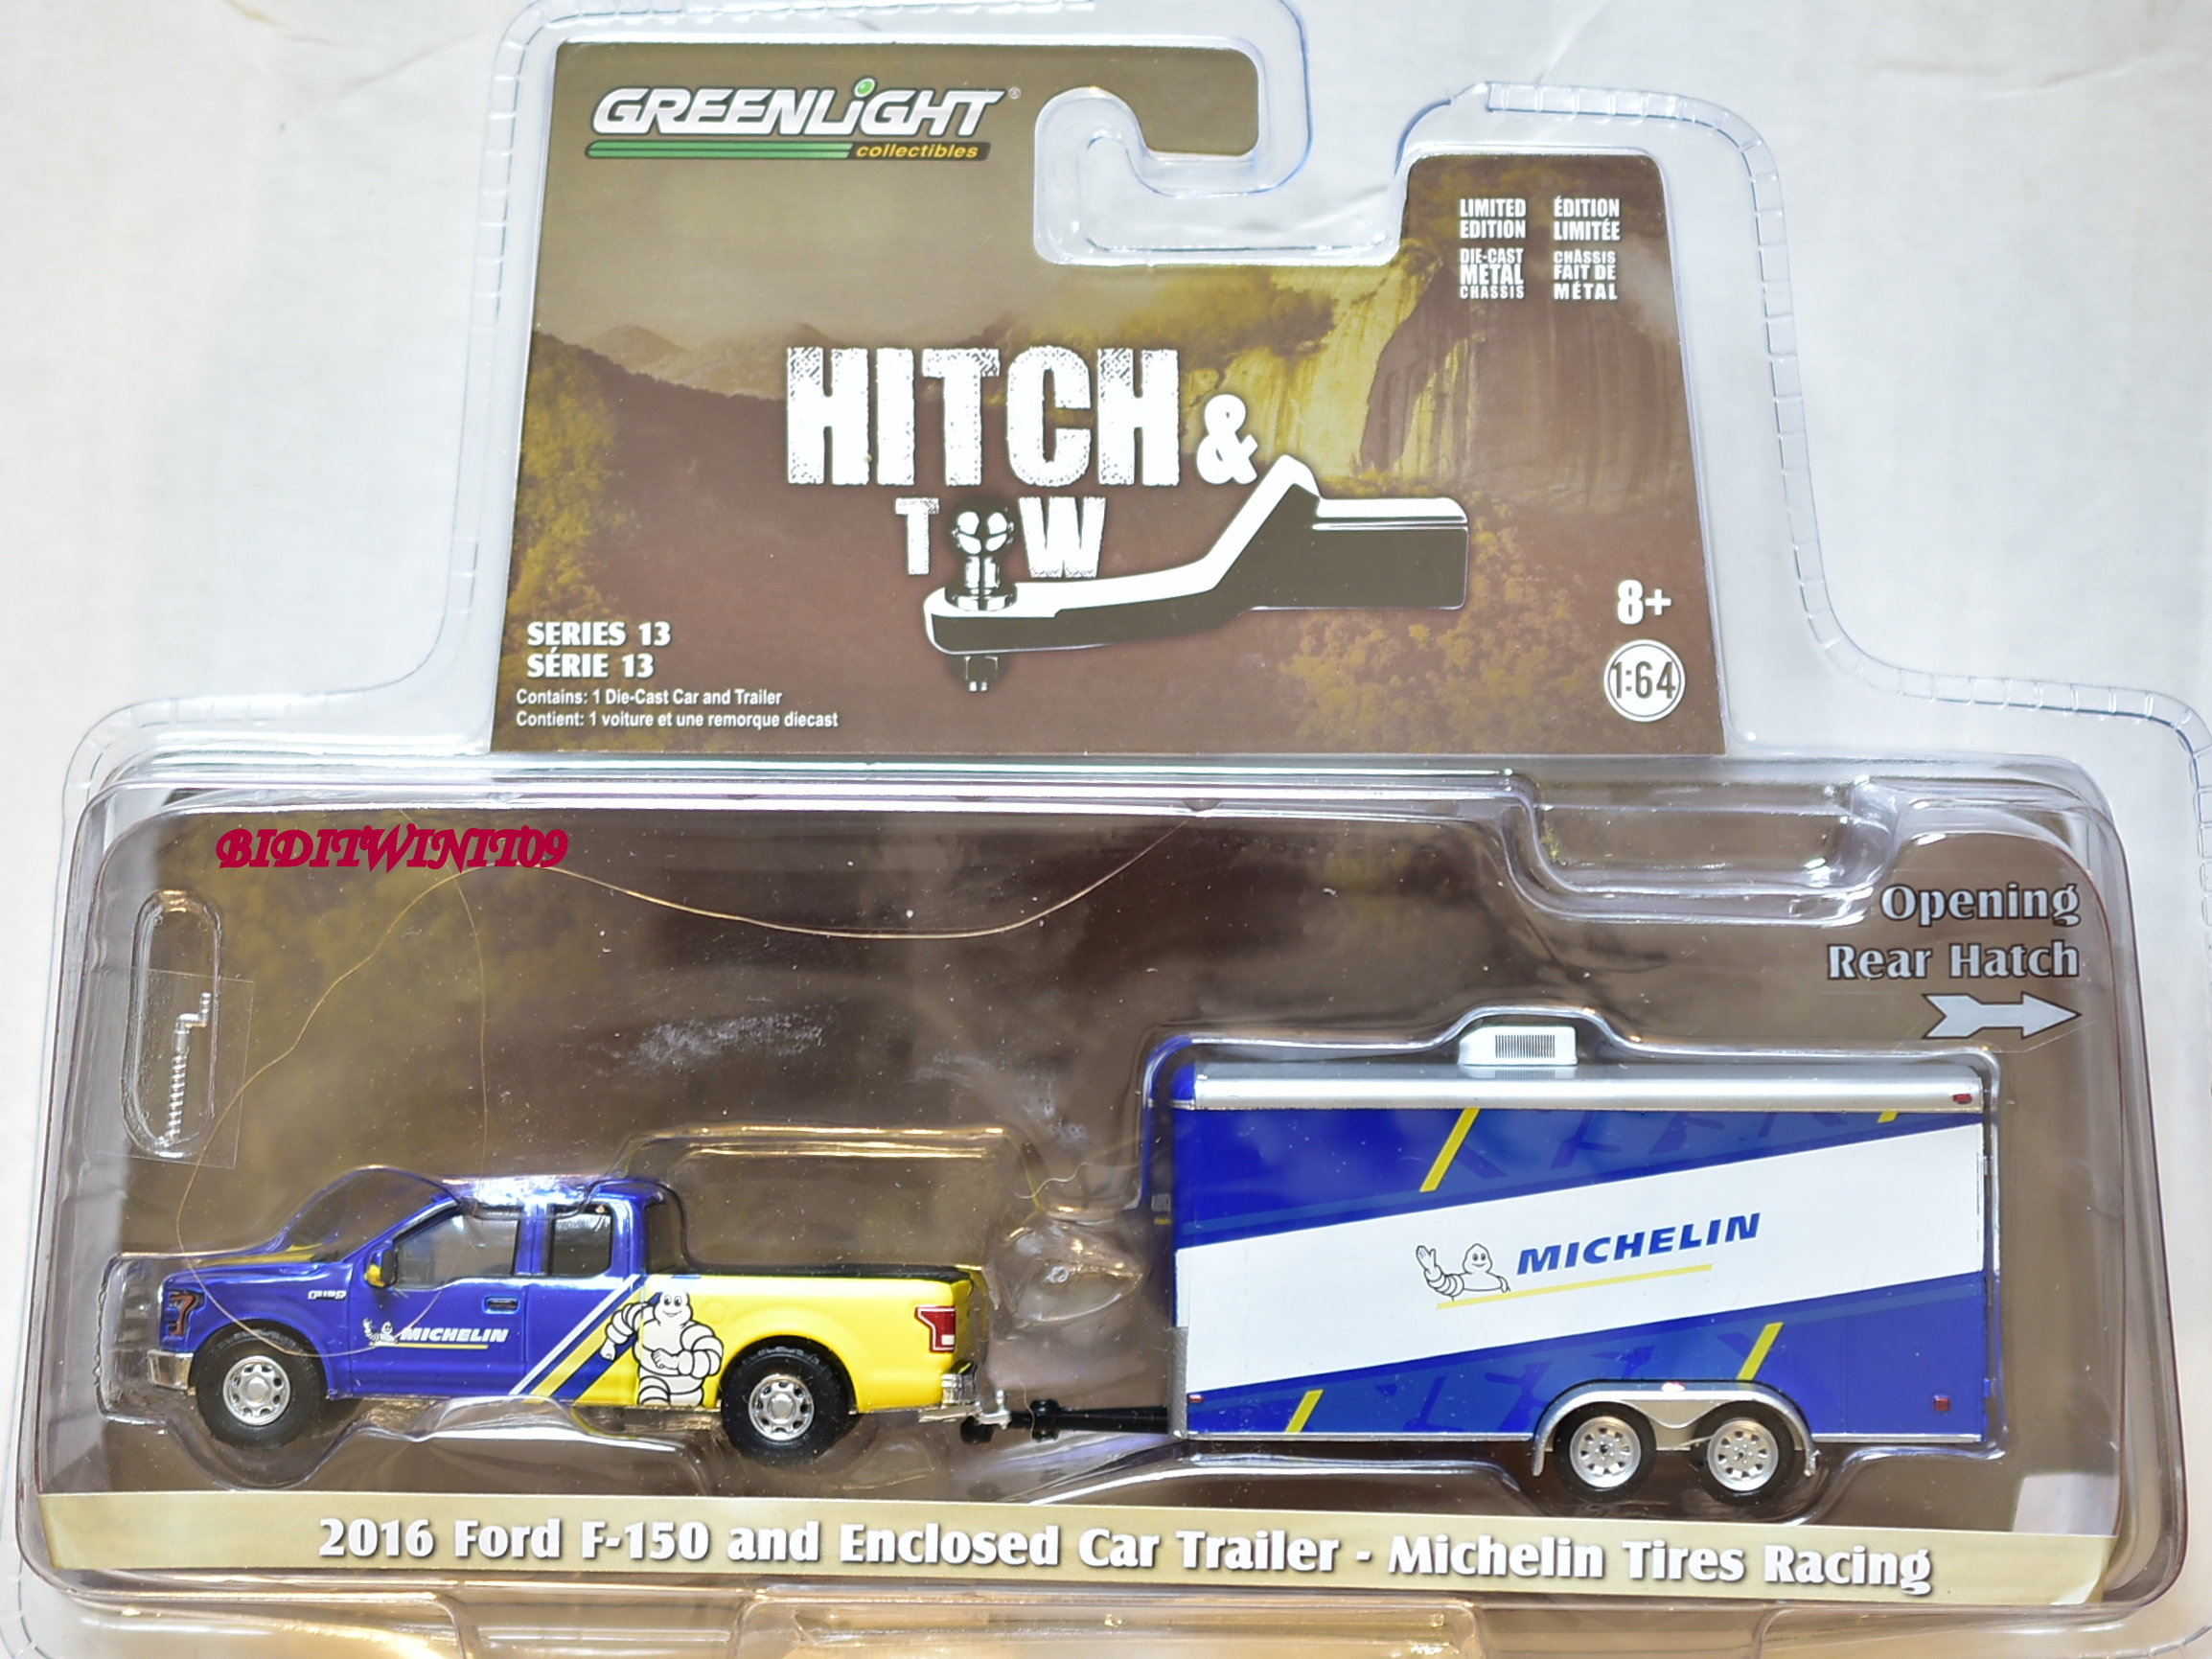 GREENLIGHT 2016 FORD F-150 AND ENCLOED CAR TRAILER